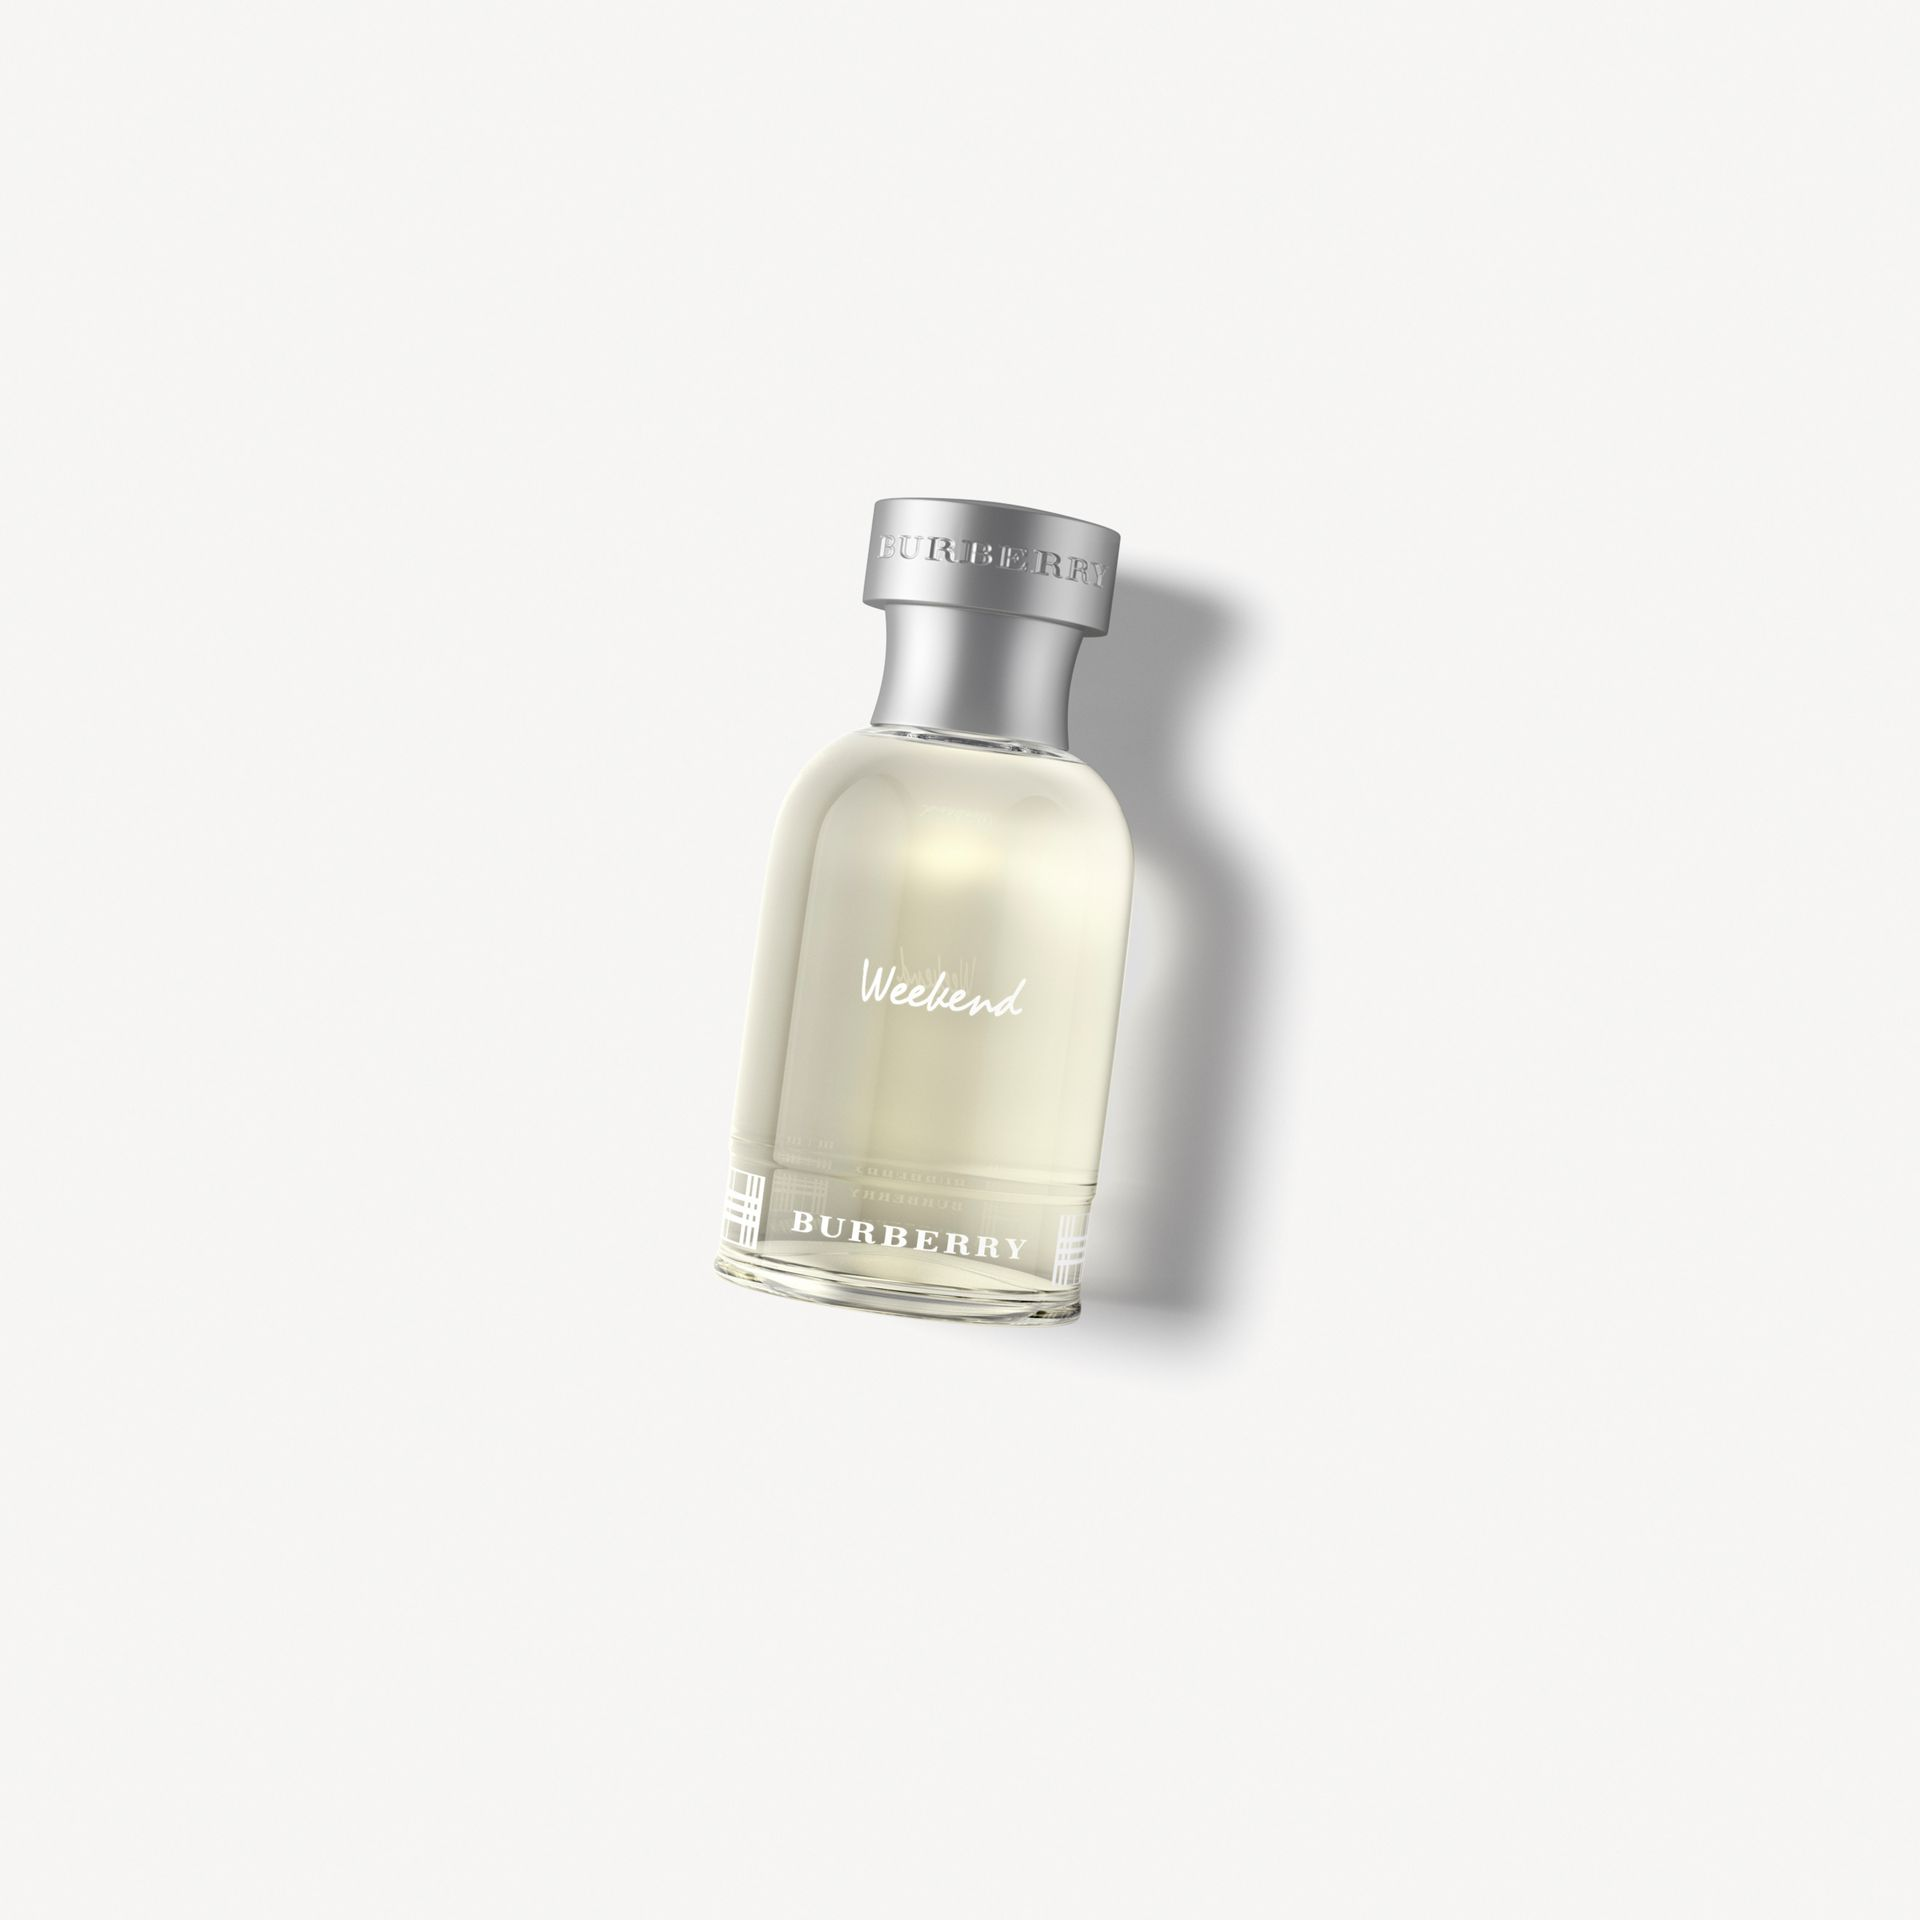 Burberry Weekend 淡香水 50ml - 男款 | Burberry - 圖庫照片 1